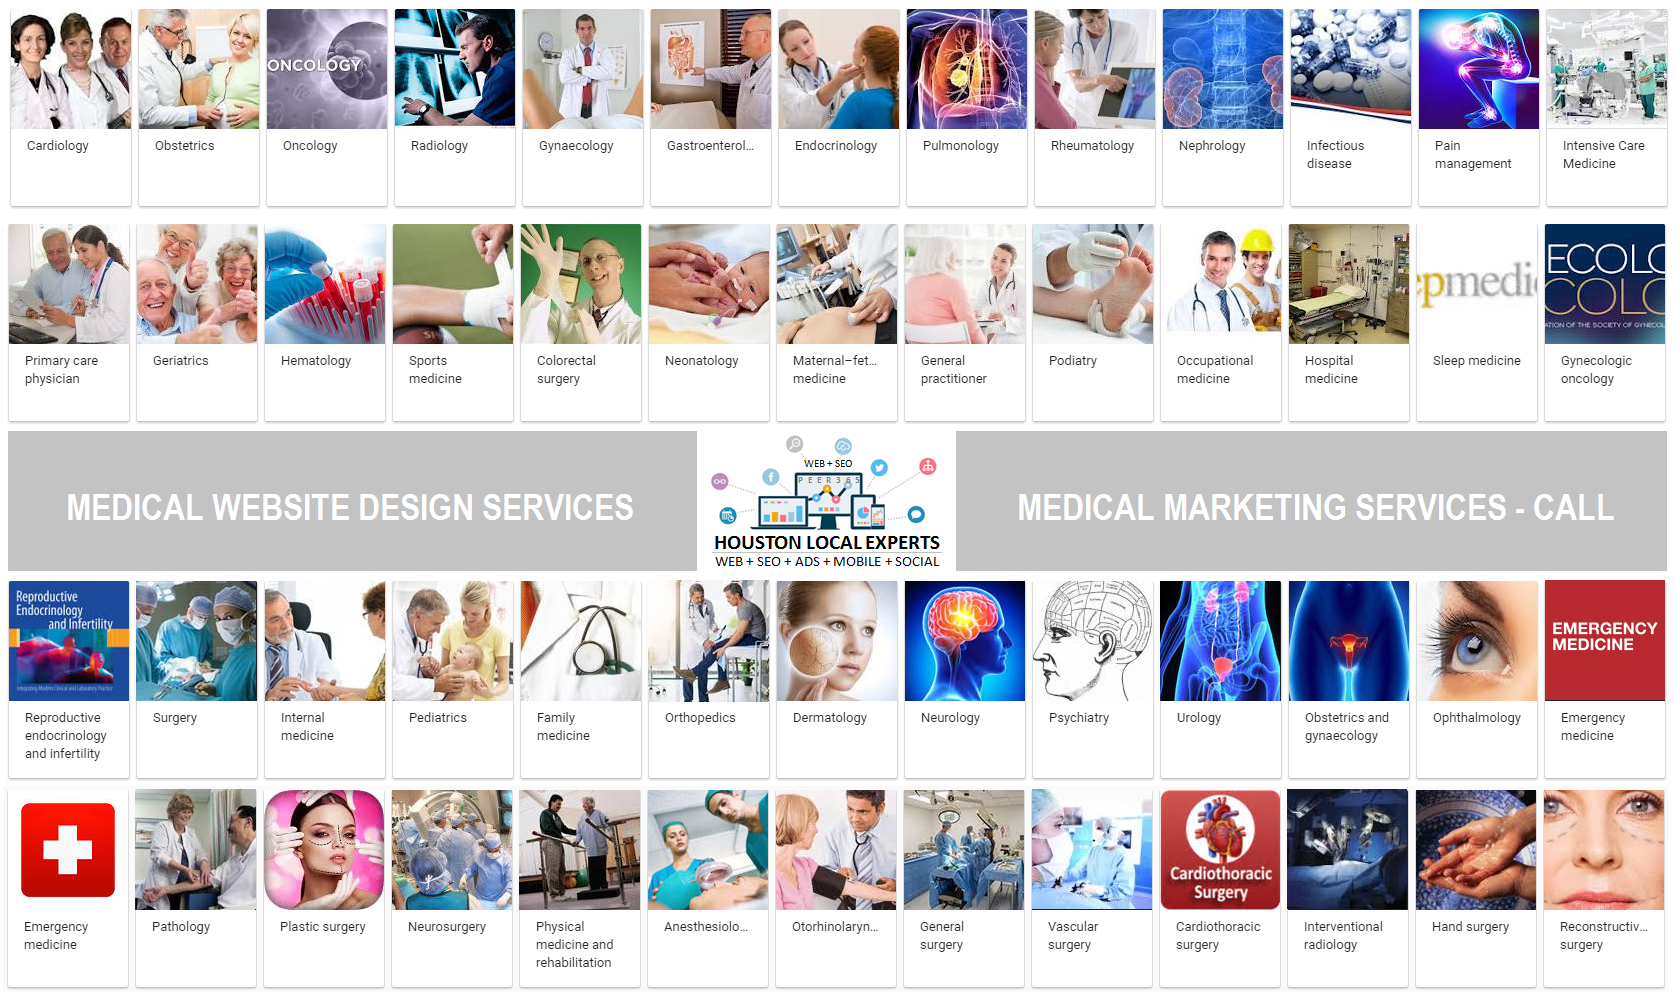 Medical Clinic Website Houston - SEO CONSULTANT TEXAS MEDICAL CENTER WEB DESIGN AND SEO SERVICES